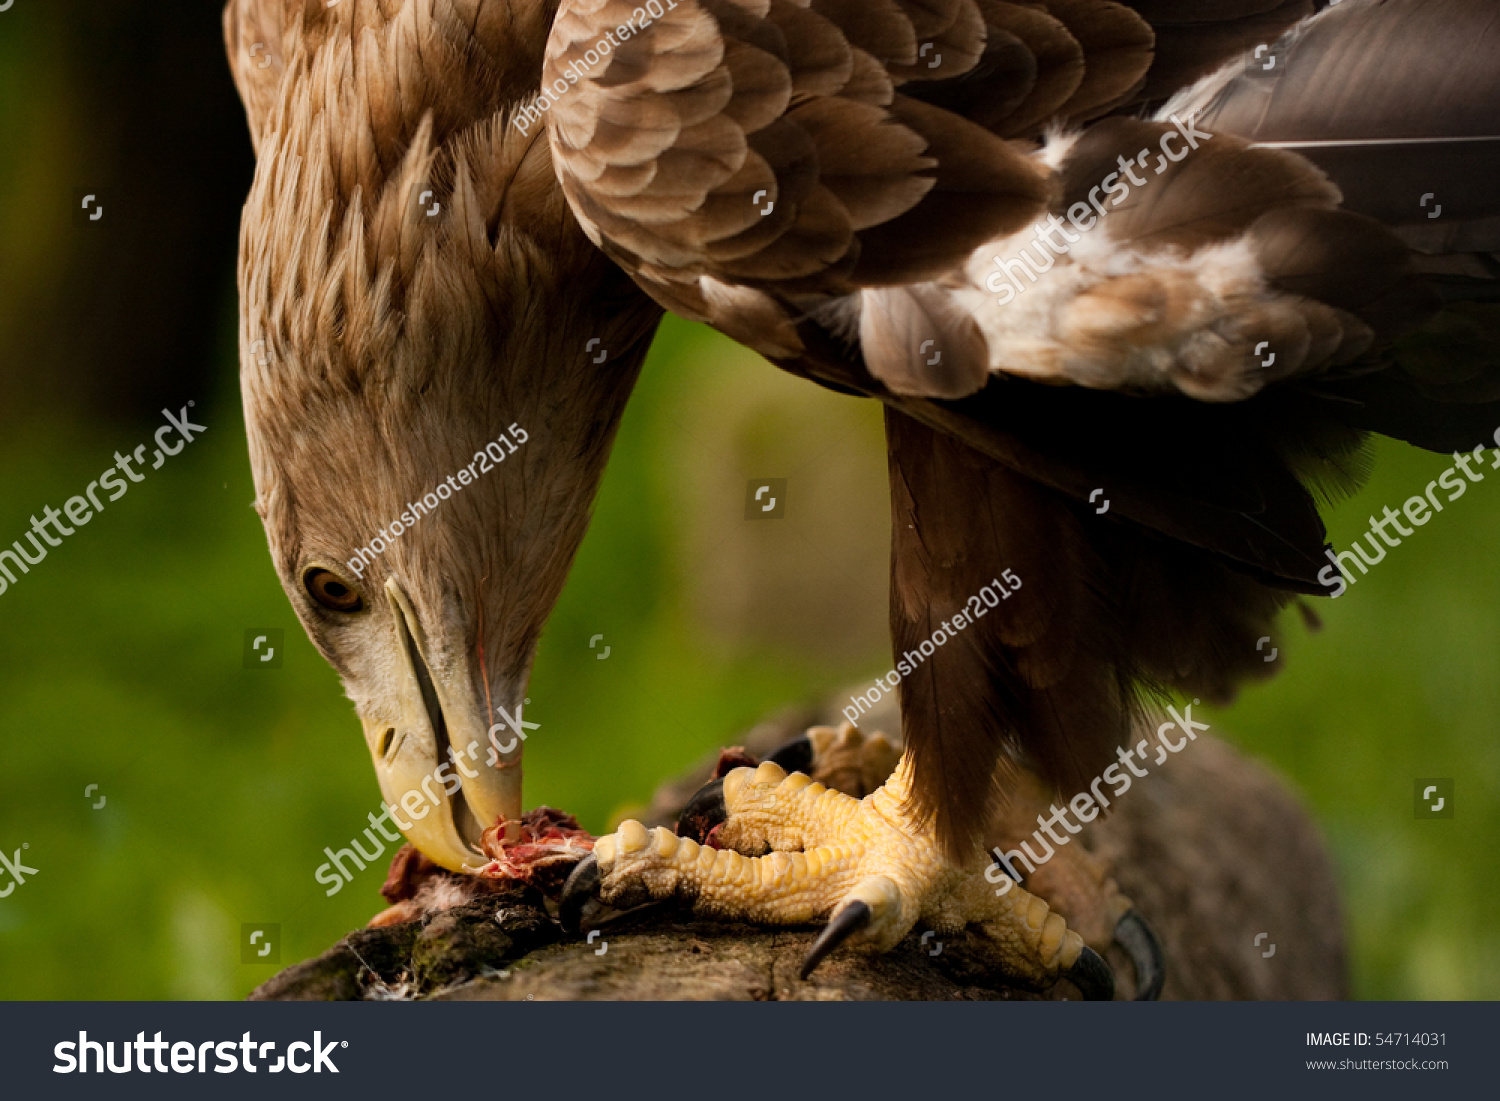 Eagle eating meat - photo#11